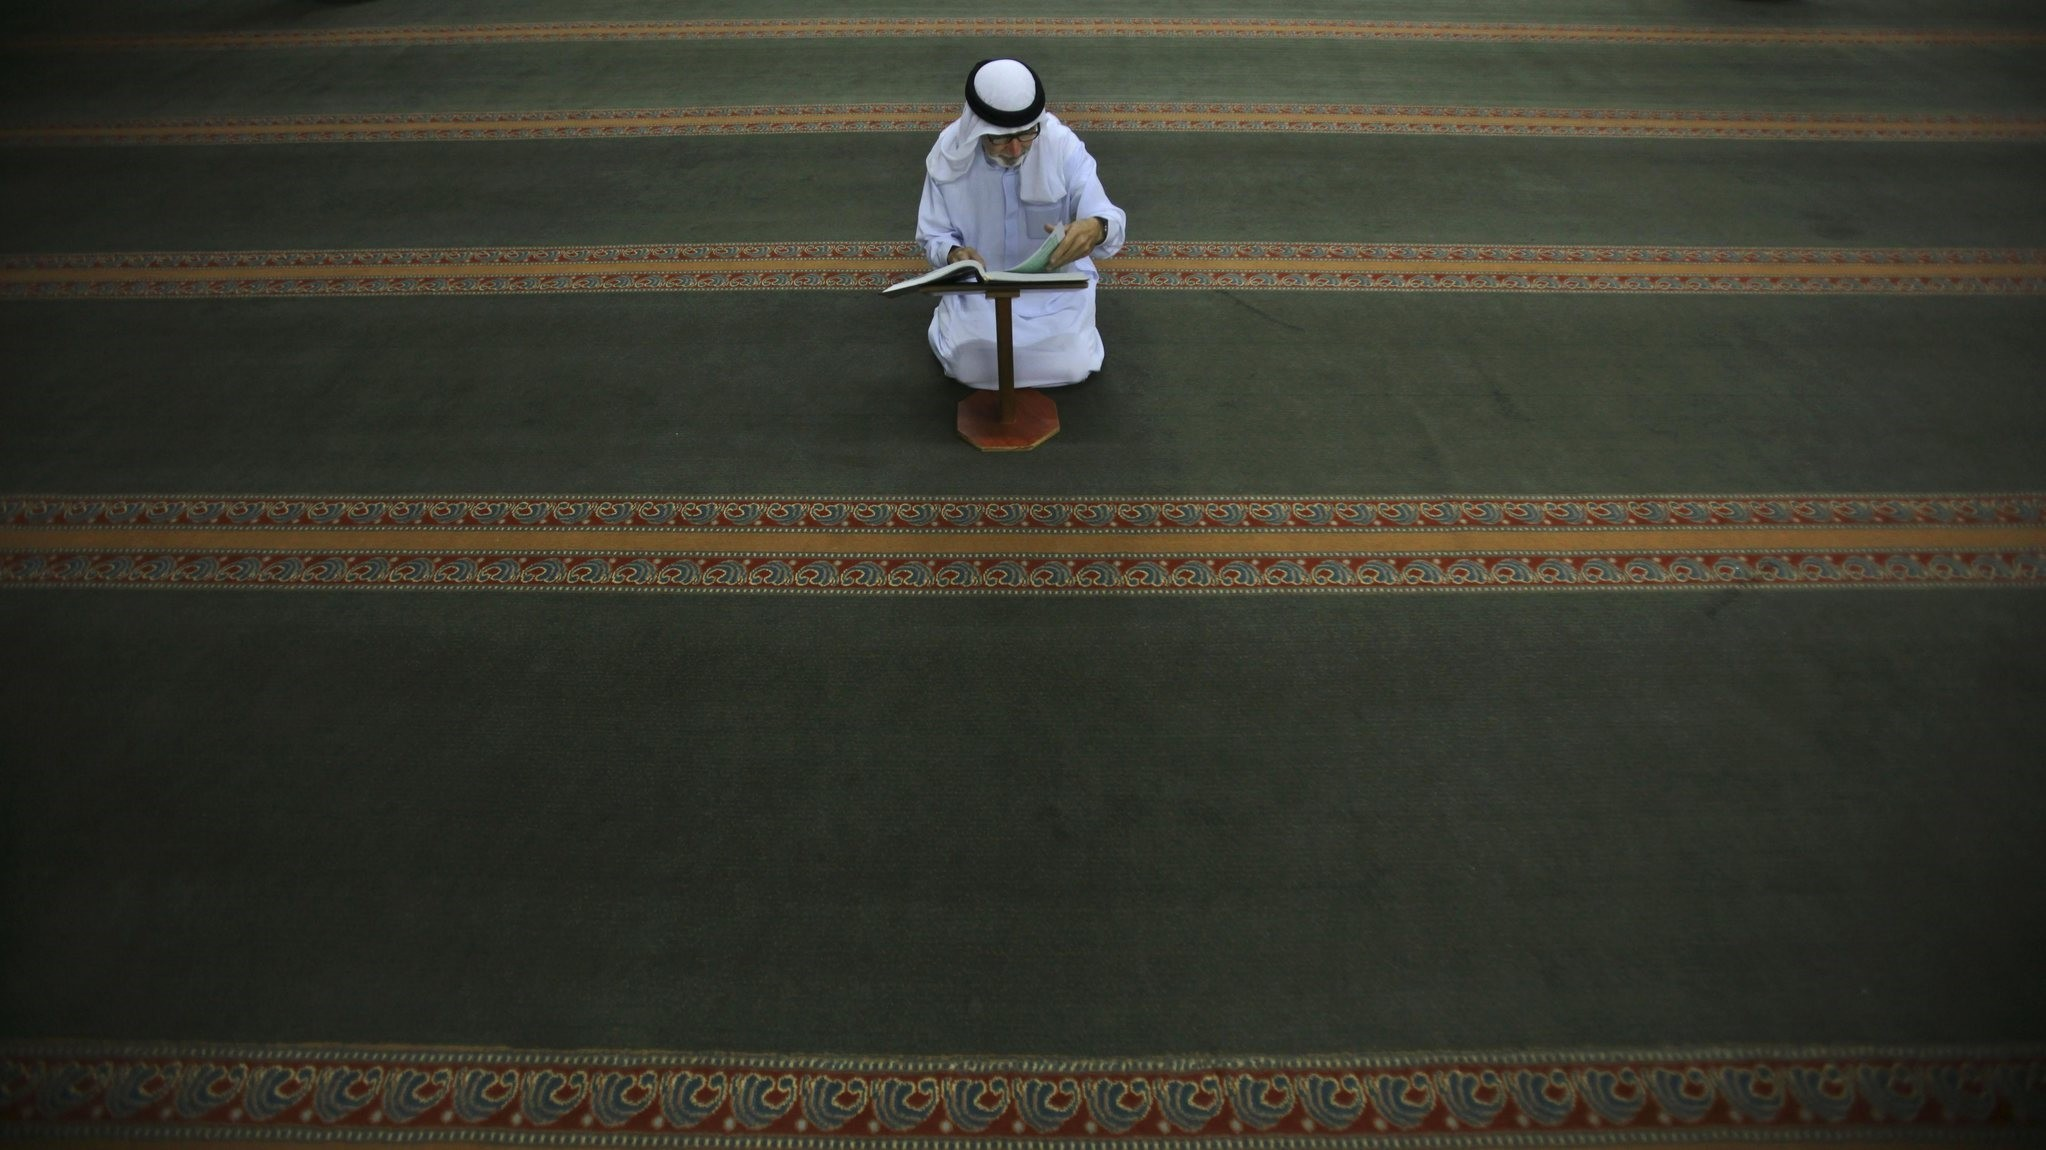 An elderly Palestinian Muslim man reads the Quran following the early morning prayer on the last day of the holy month of Ramadan at a mosque in West Bank, Ramallah, Sept. 9, 2010.